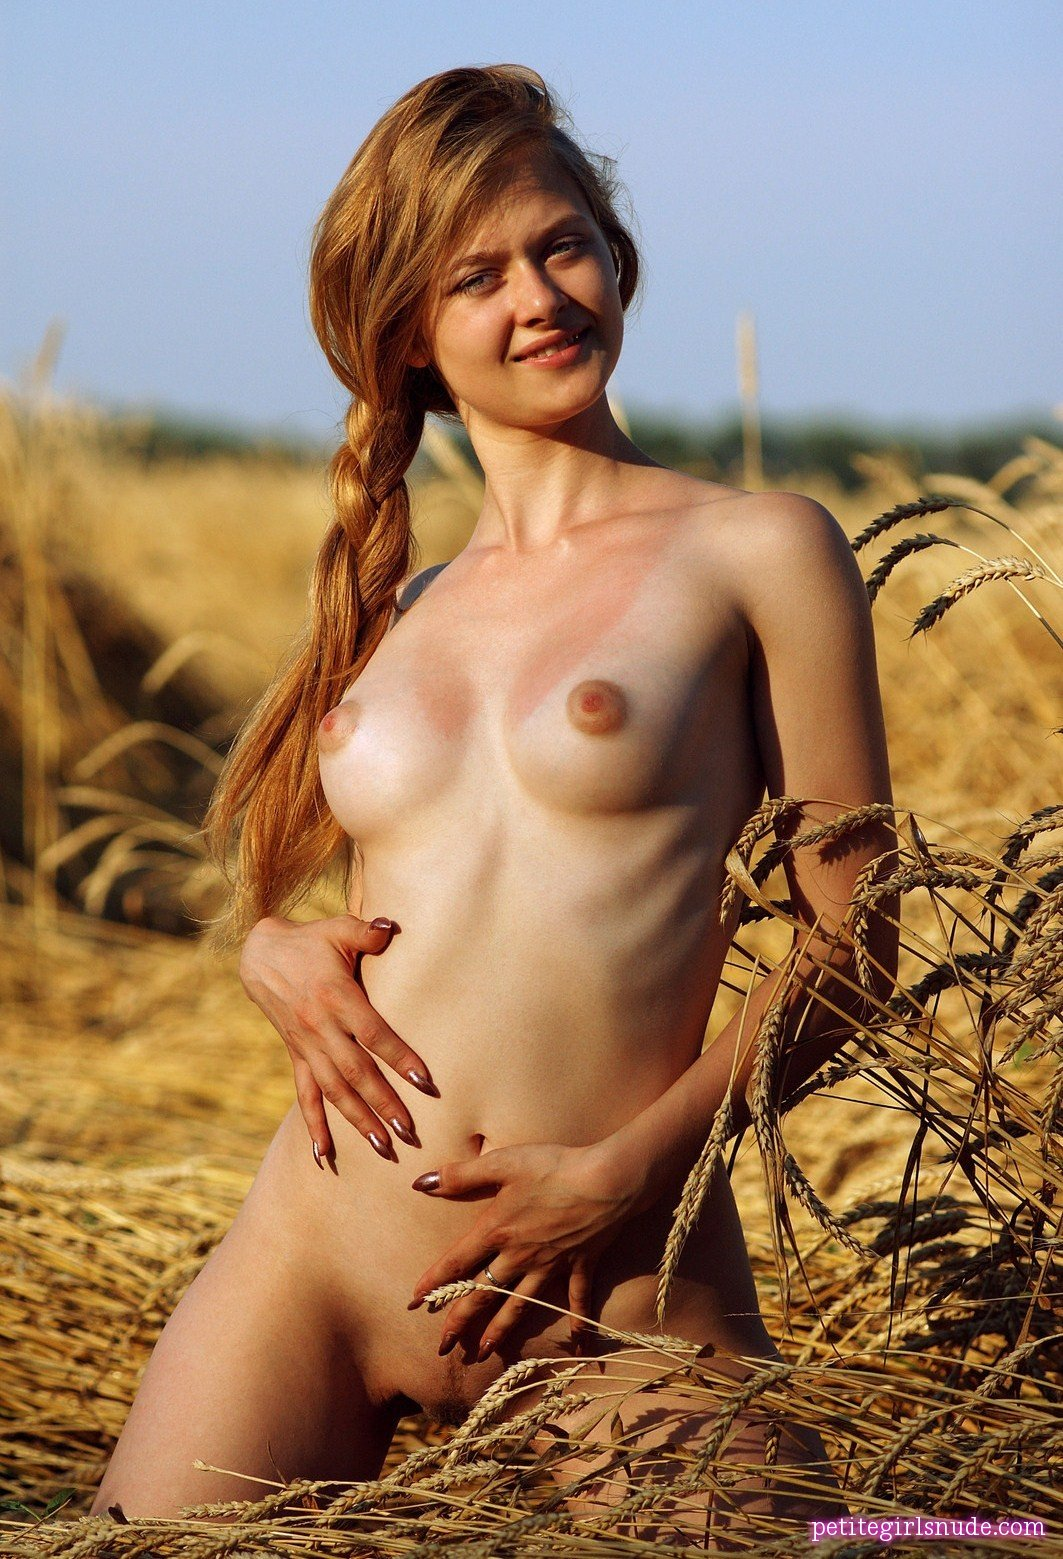 Free pic of nude woman on woman